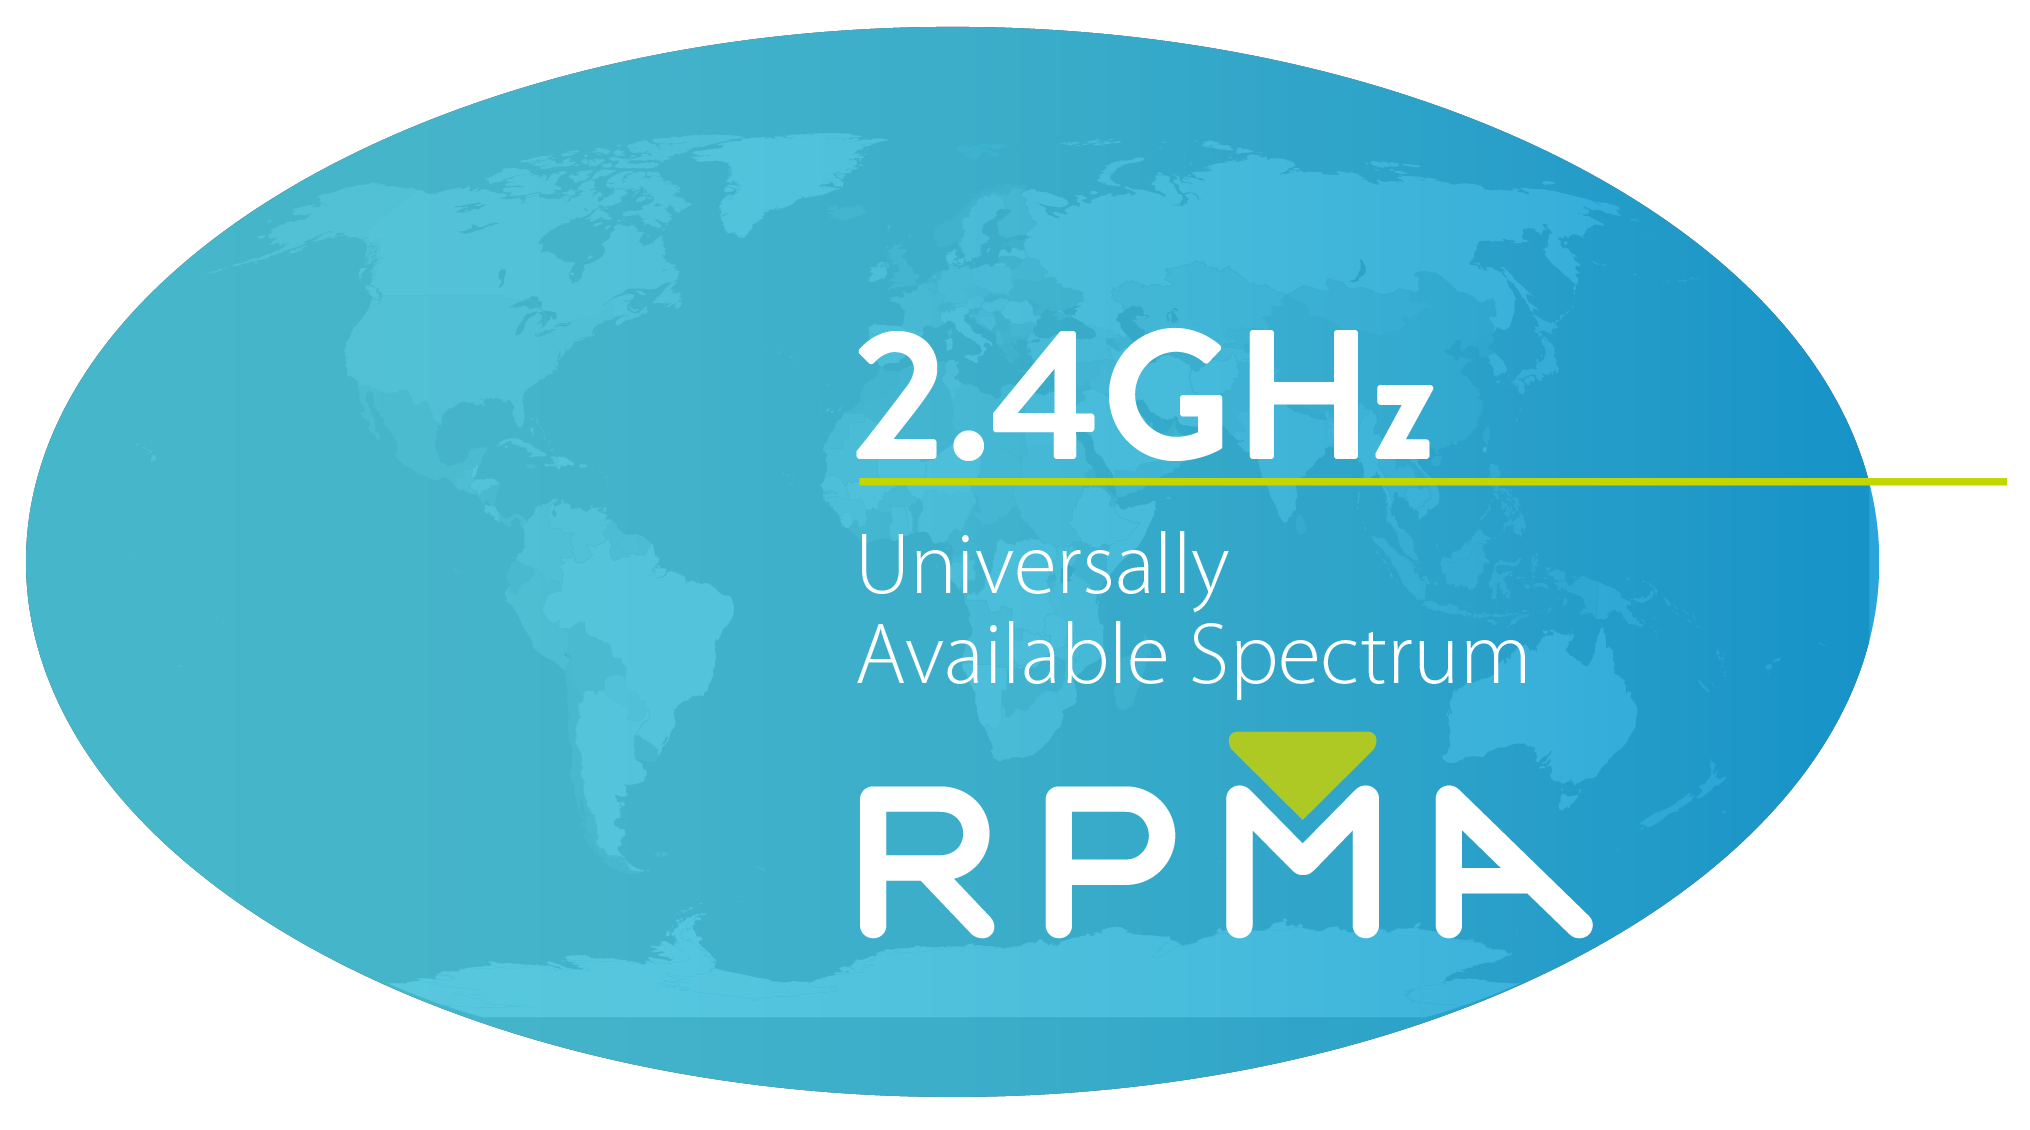 One-Band 2.4GHz Spectrum